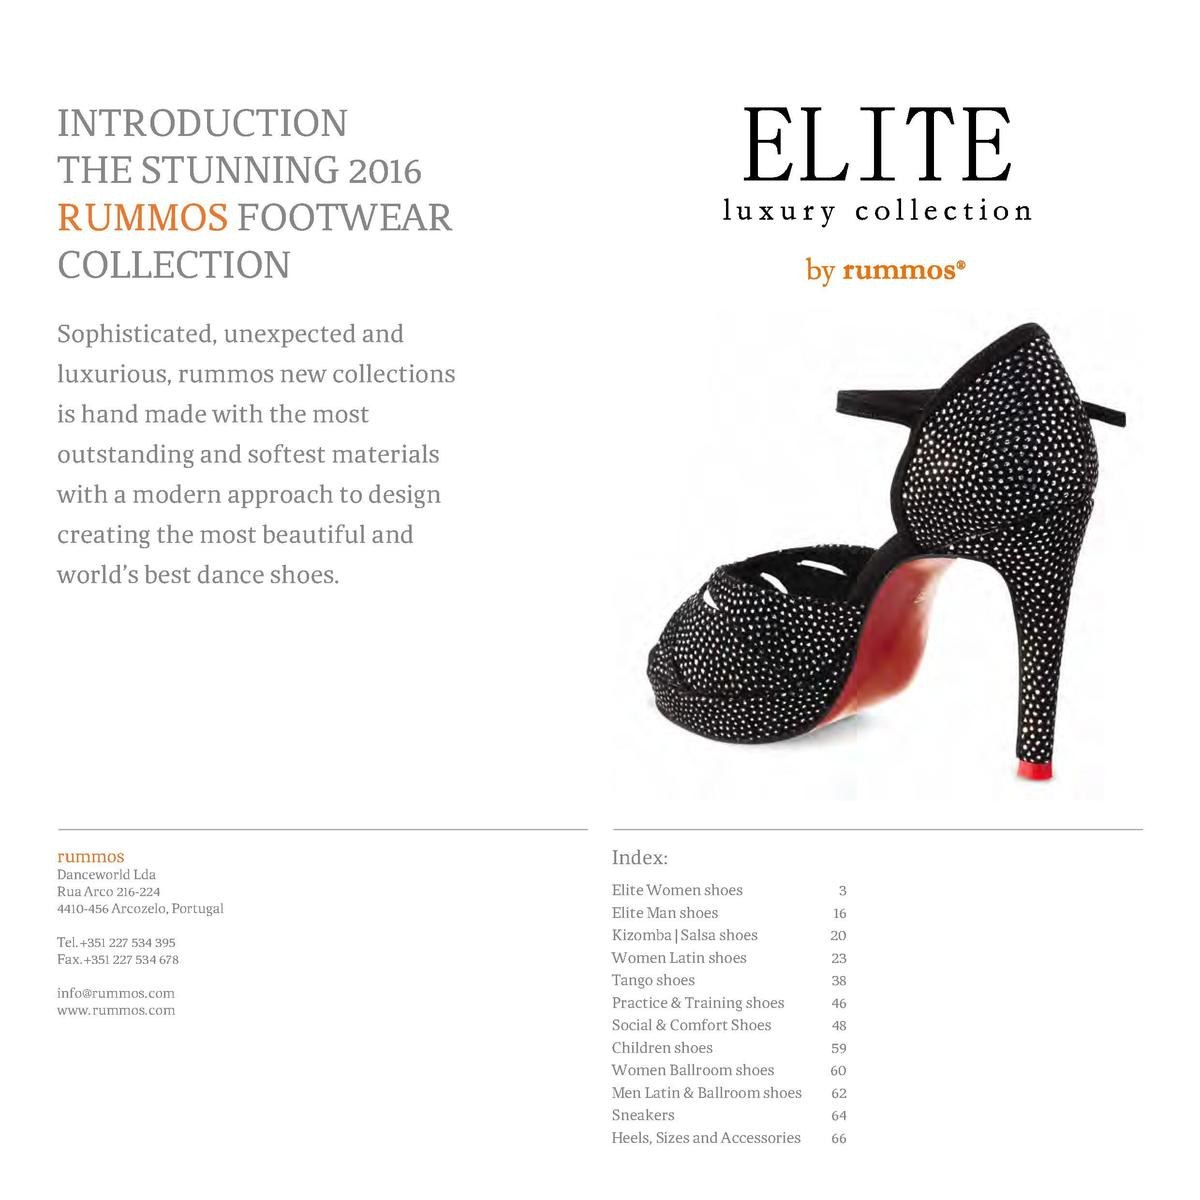 INTRODUCTION THE STUNNING 2016 RUMMOS FOOTWEAR COLLECTION Sophisticated, unexpected and luxurious, rummos new collections ...